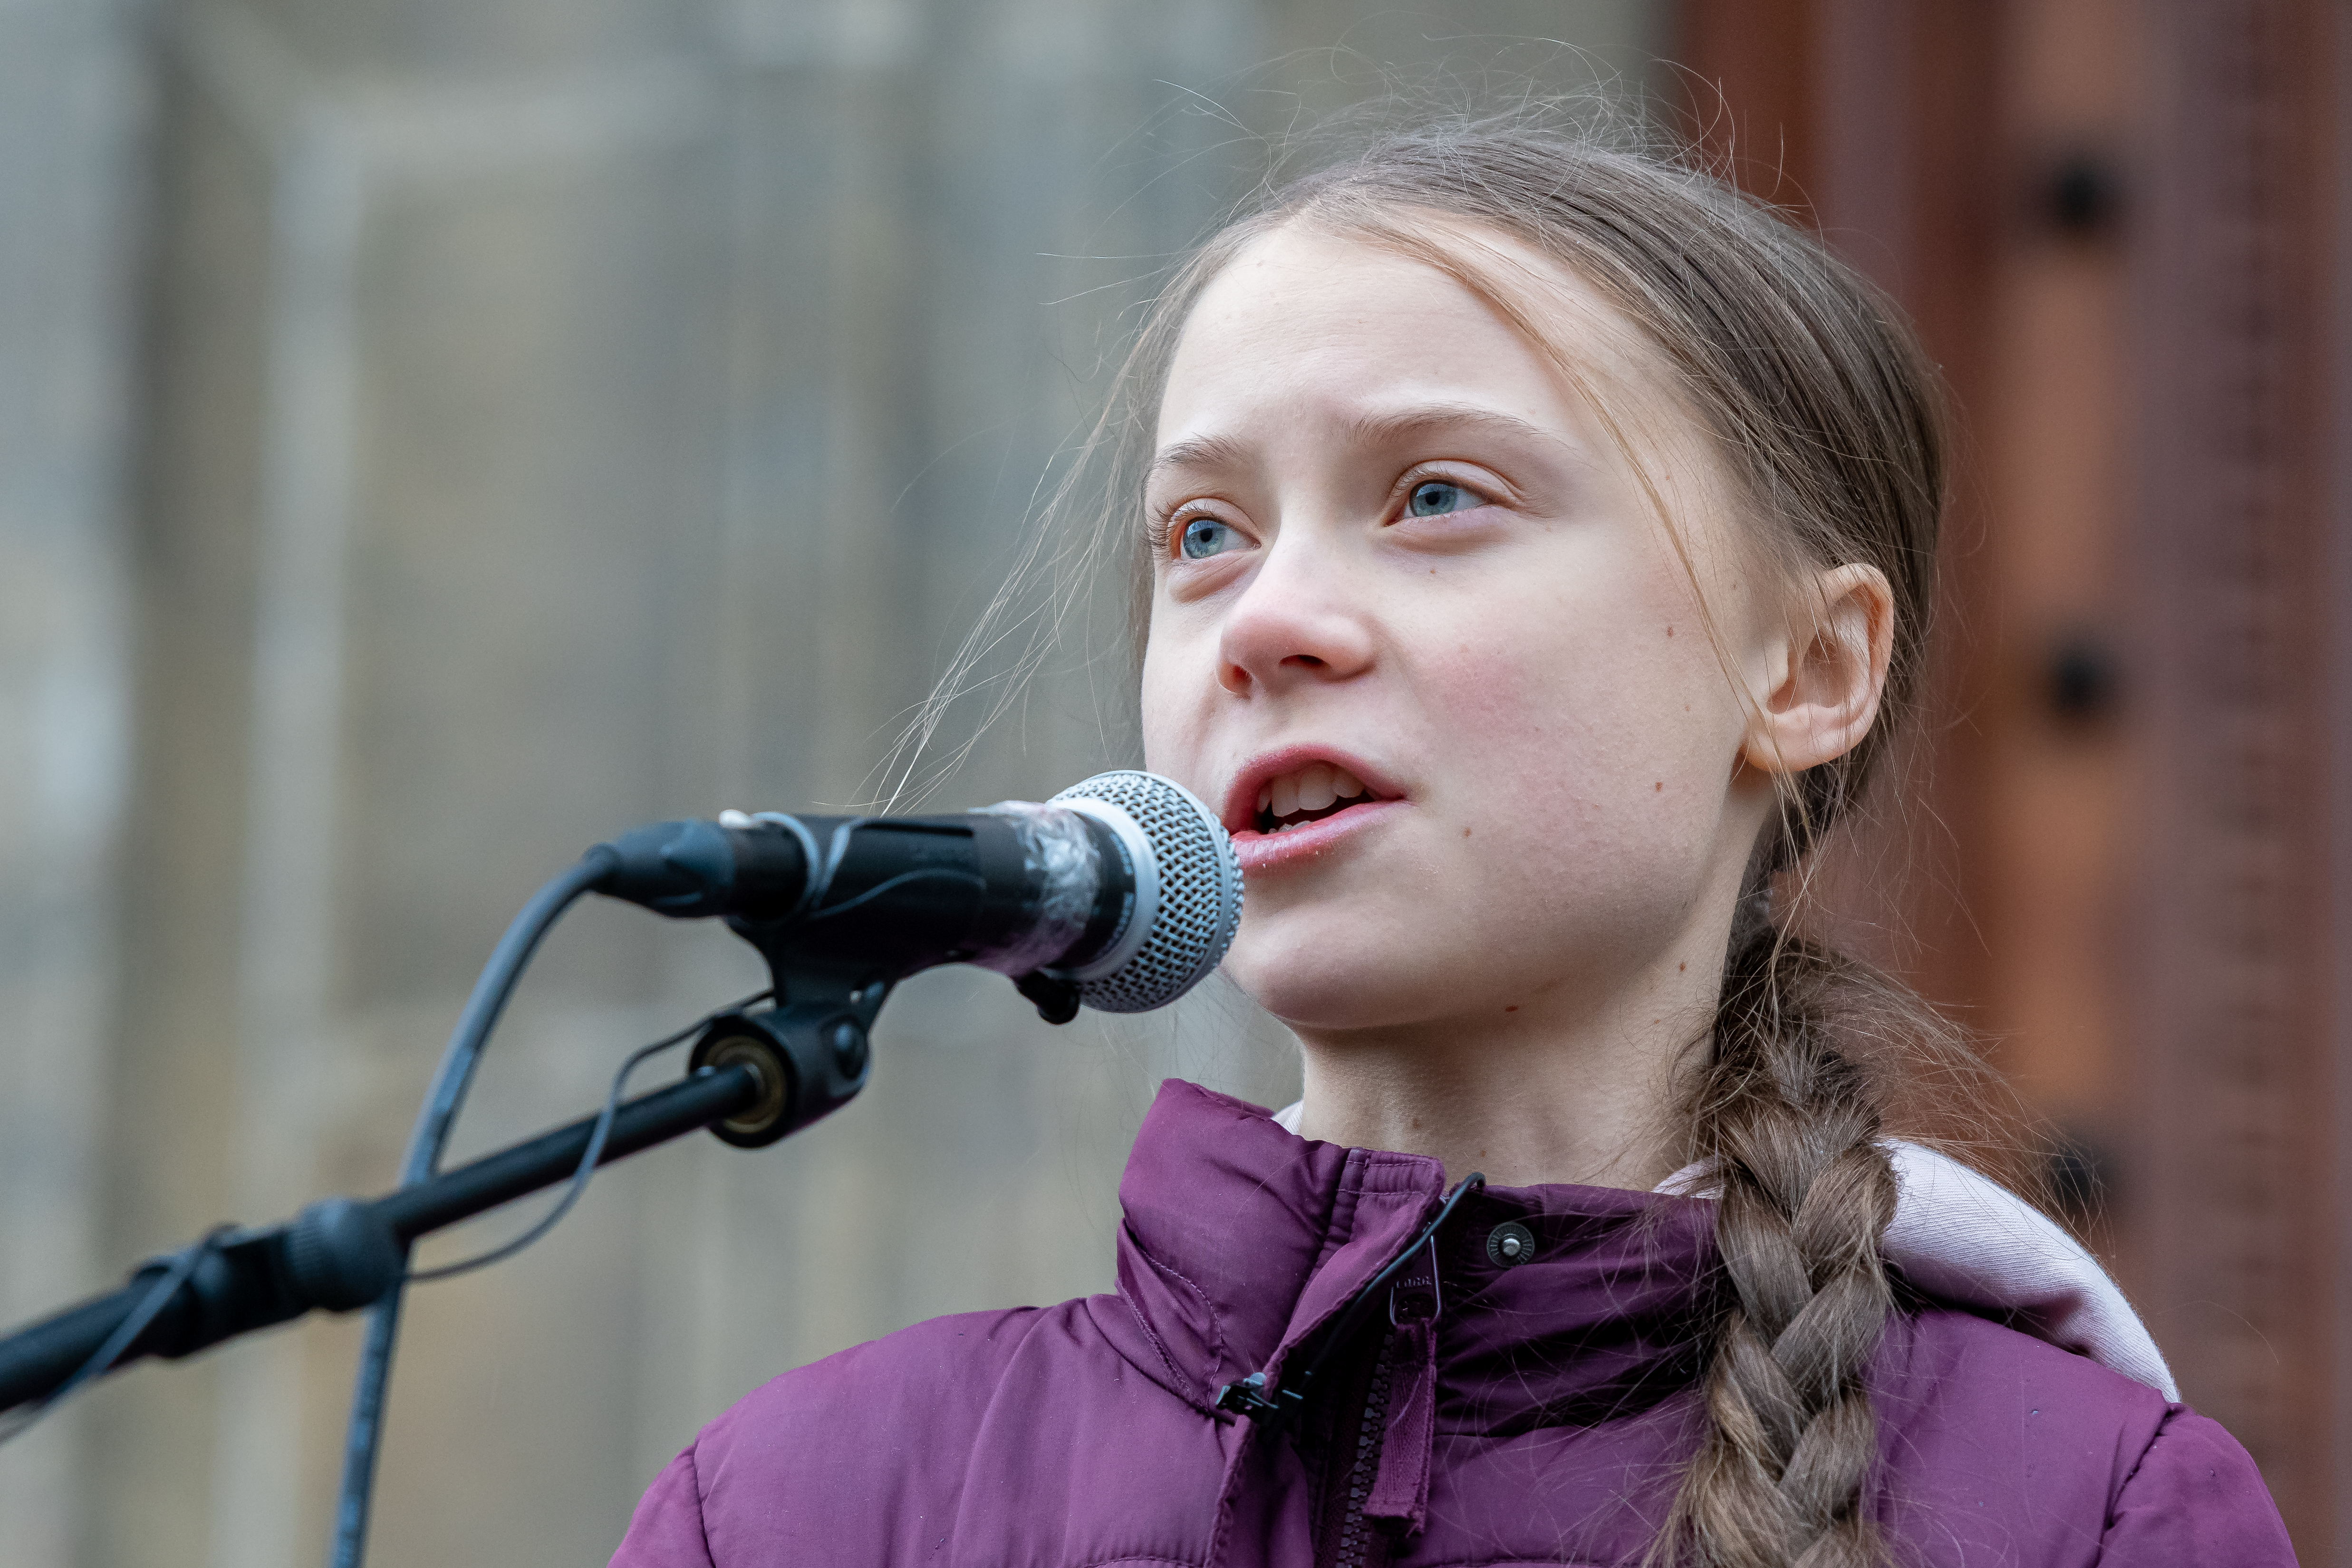 The right keeps attacking Greta Thunberg's identity, not her ideas